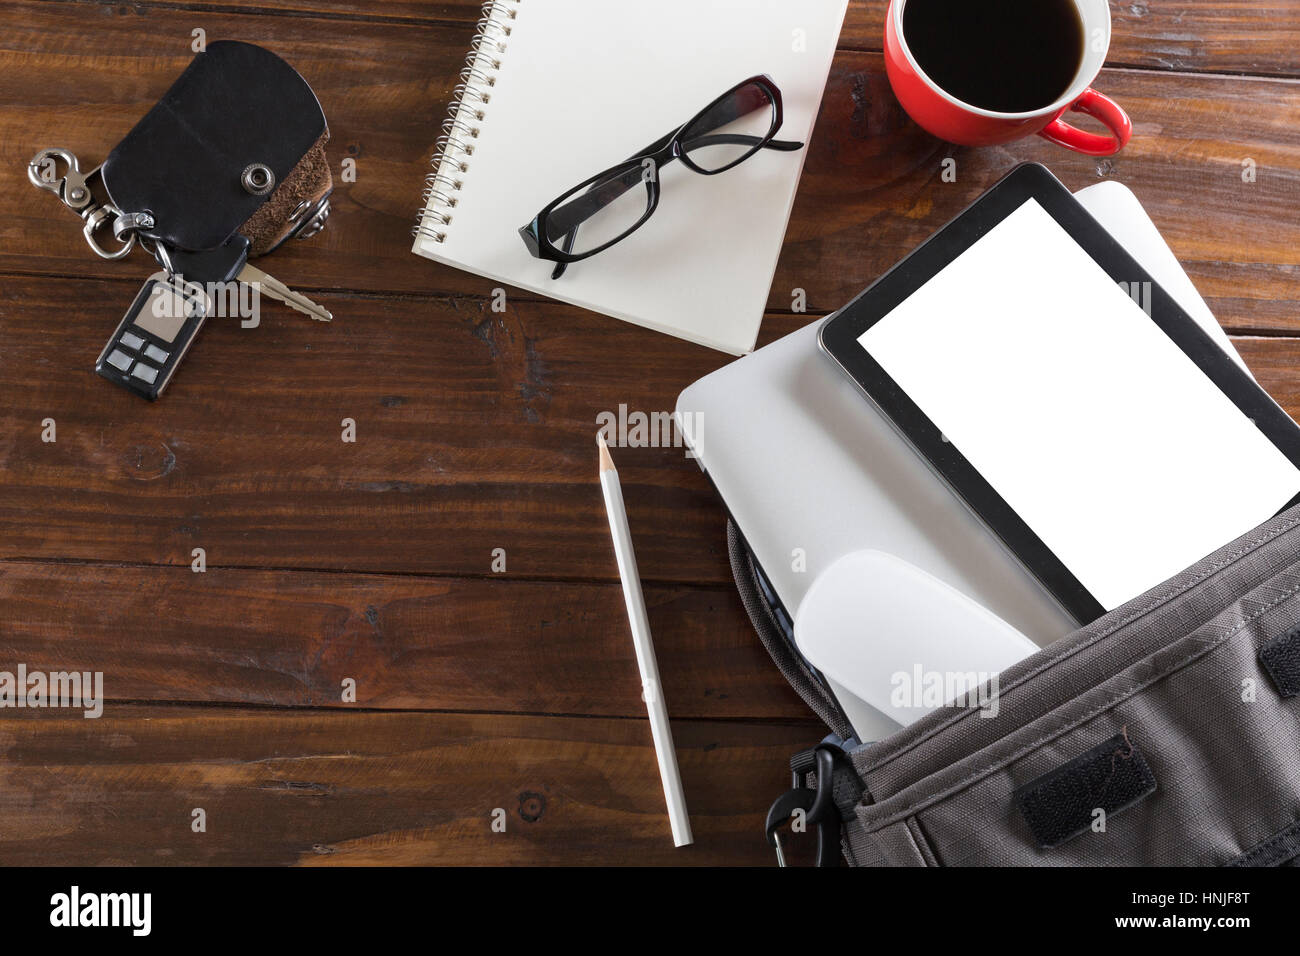 car key, laptop computer and tablet on wooden office desk - top